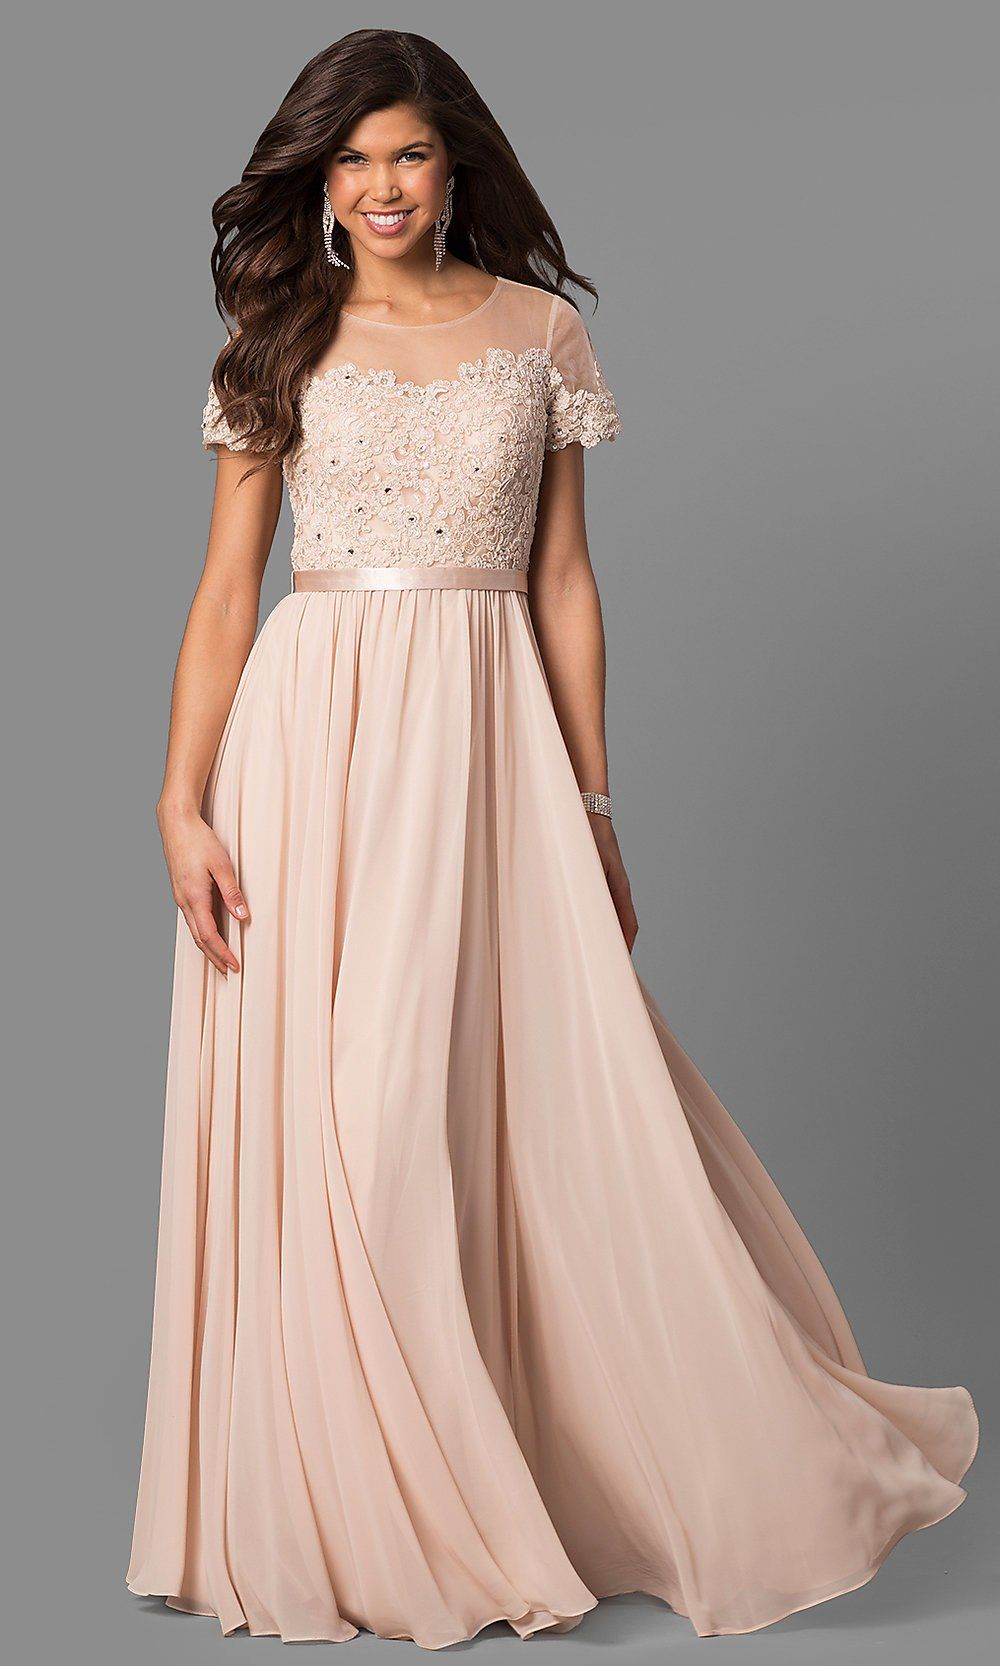 Under 200 Long Prom Dresses with Sleeves